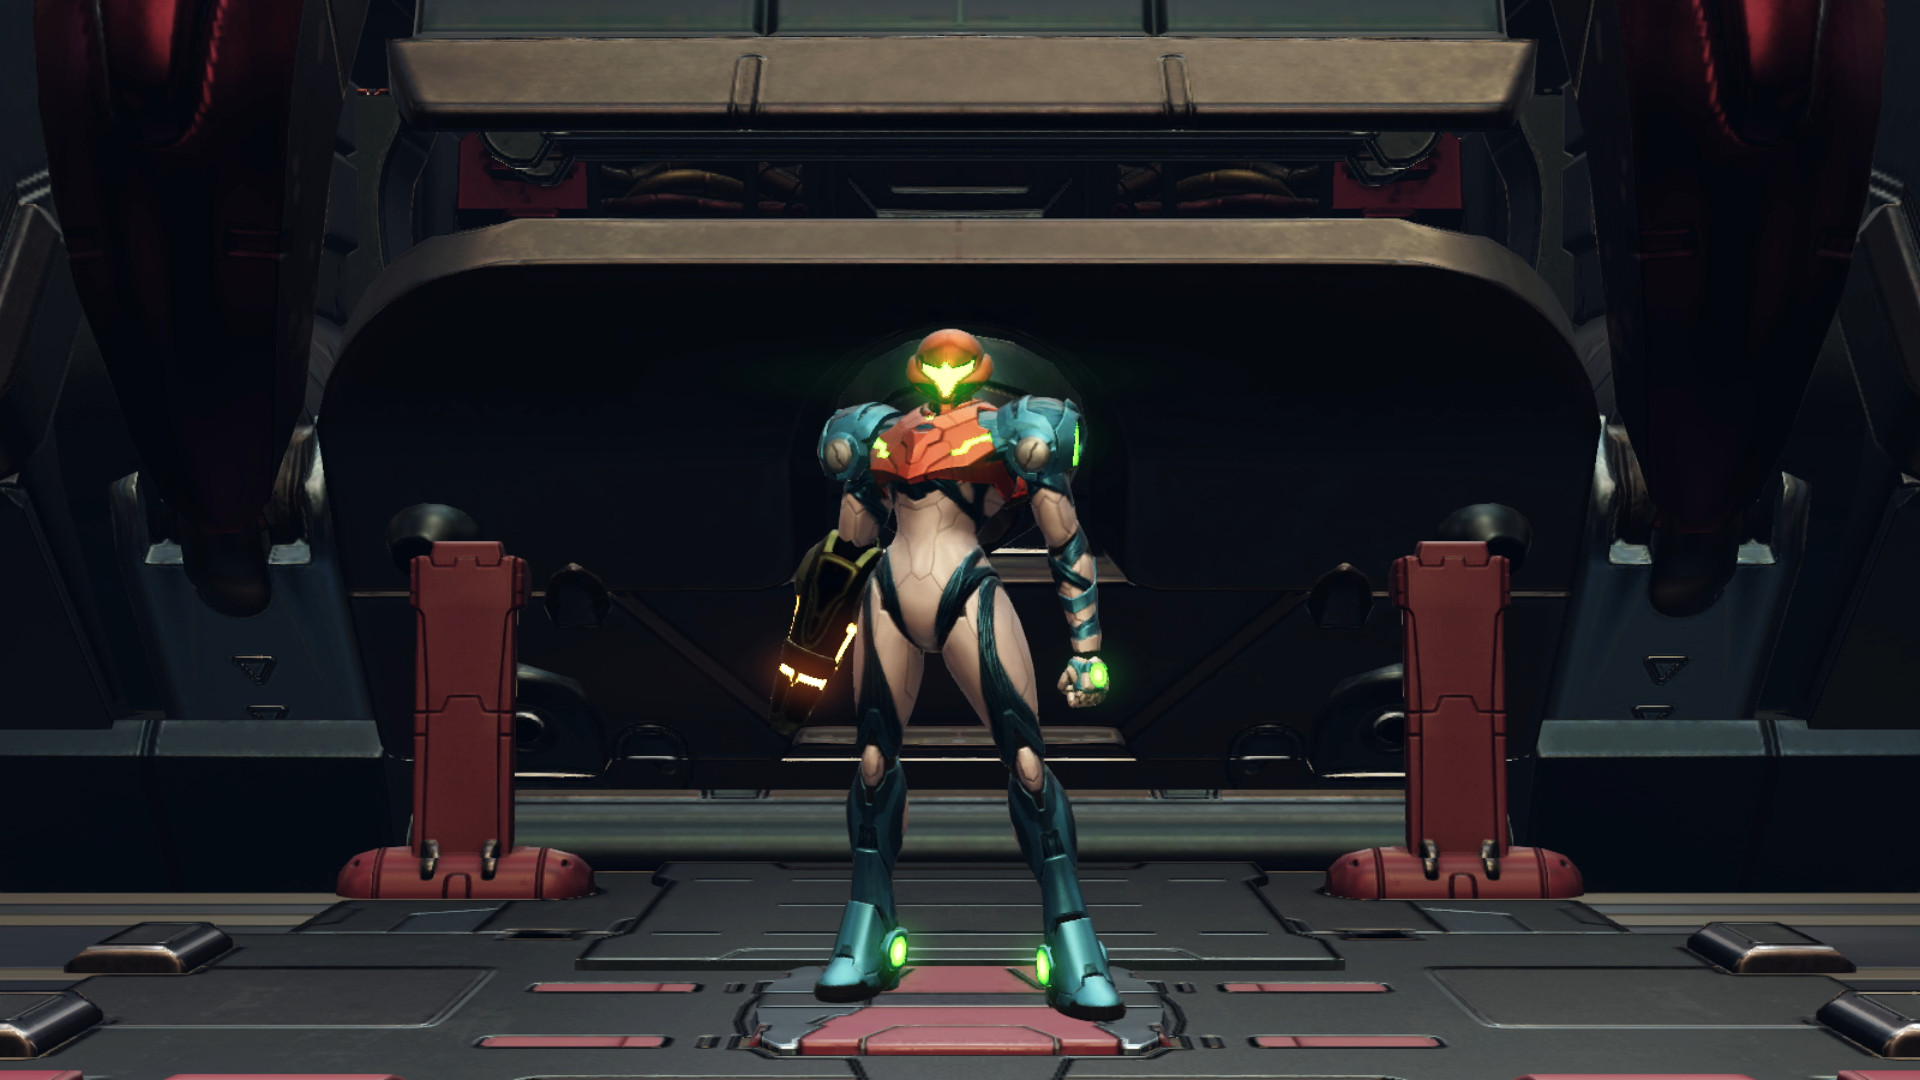 We went hands-on with Metroid Dread ahead of its launch next month.